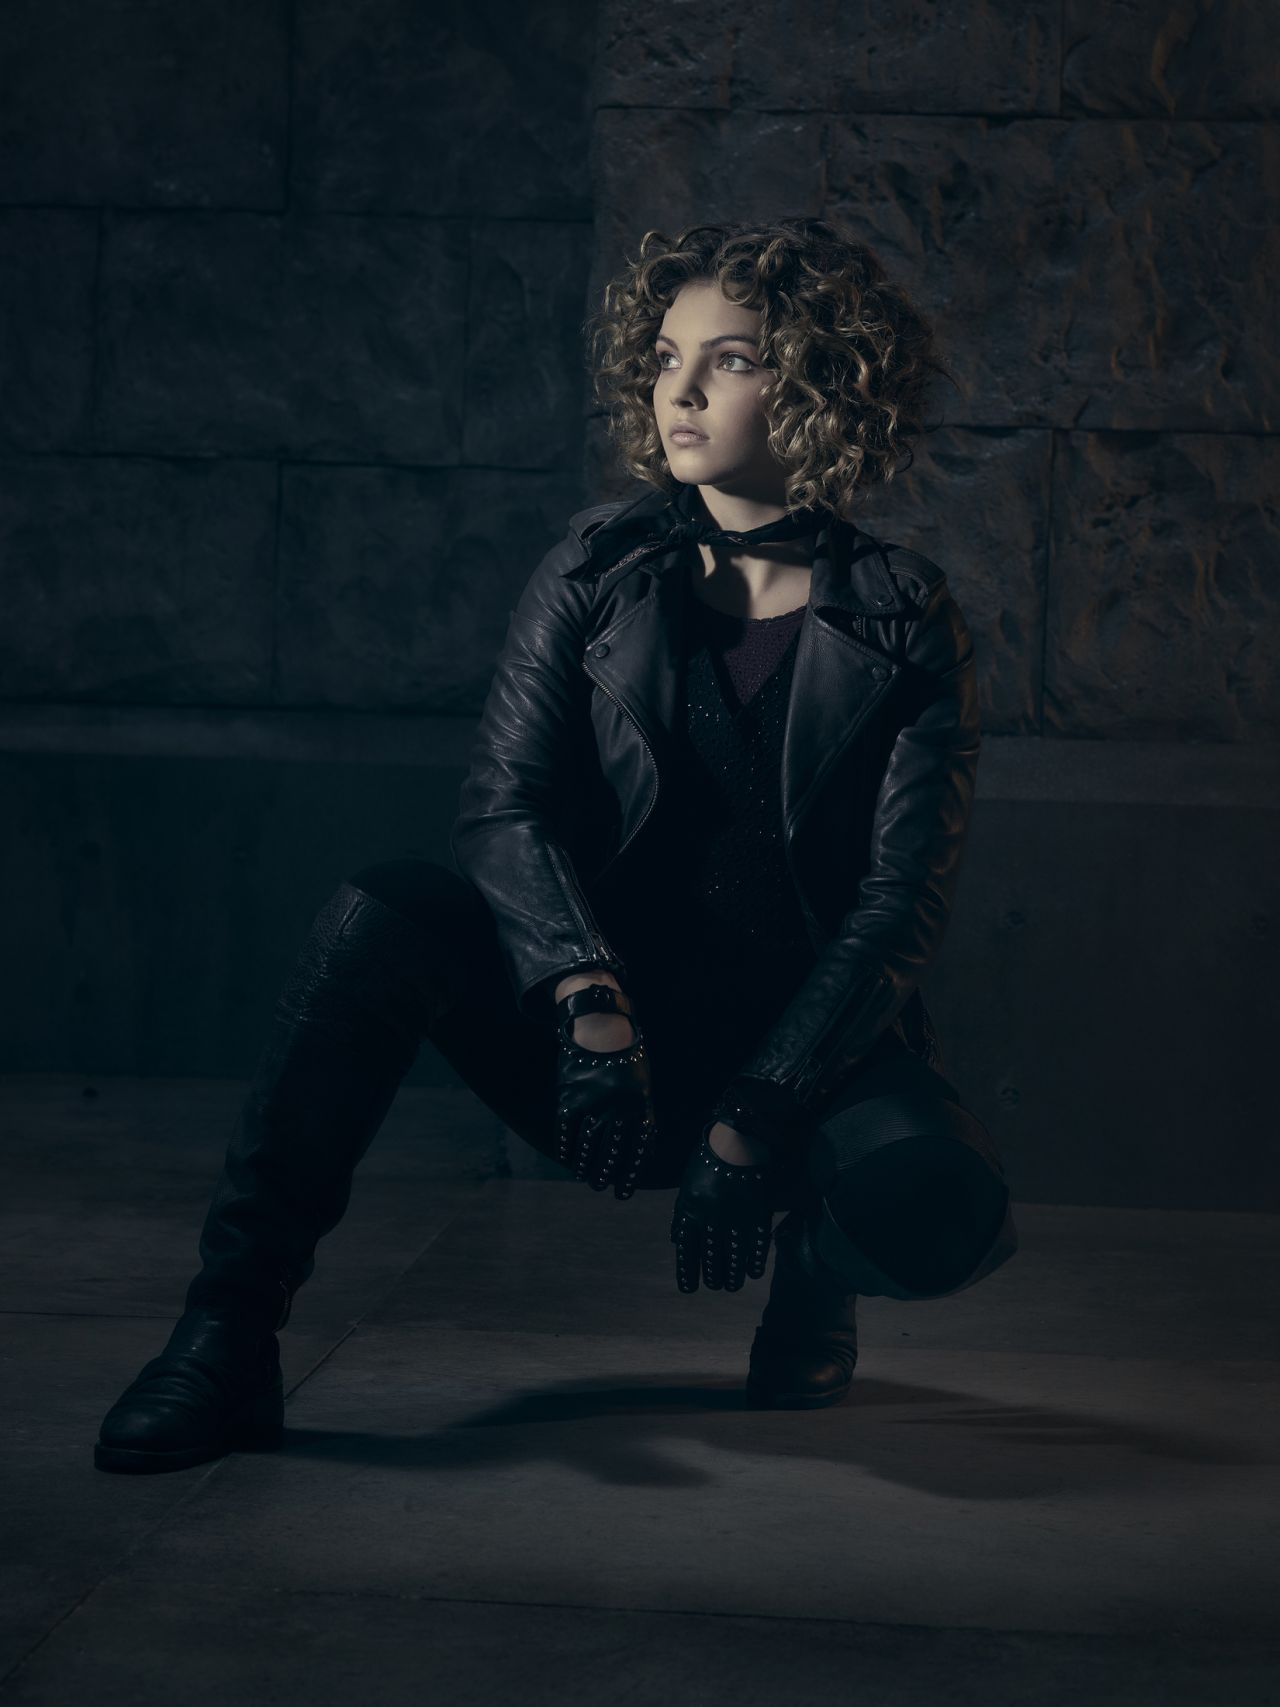 Camren Bicondova as Selina Kyle